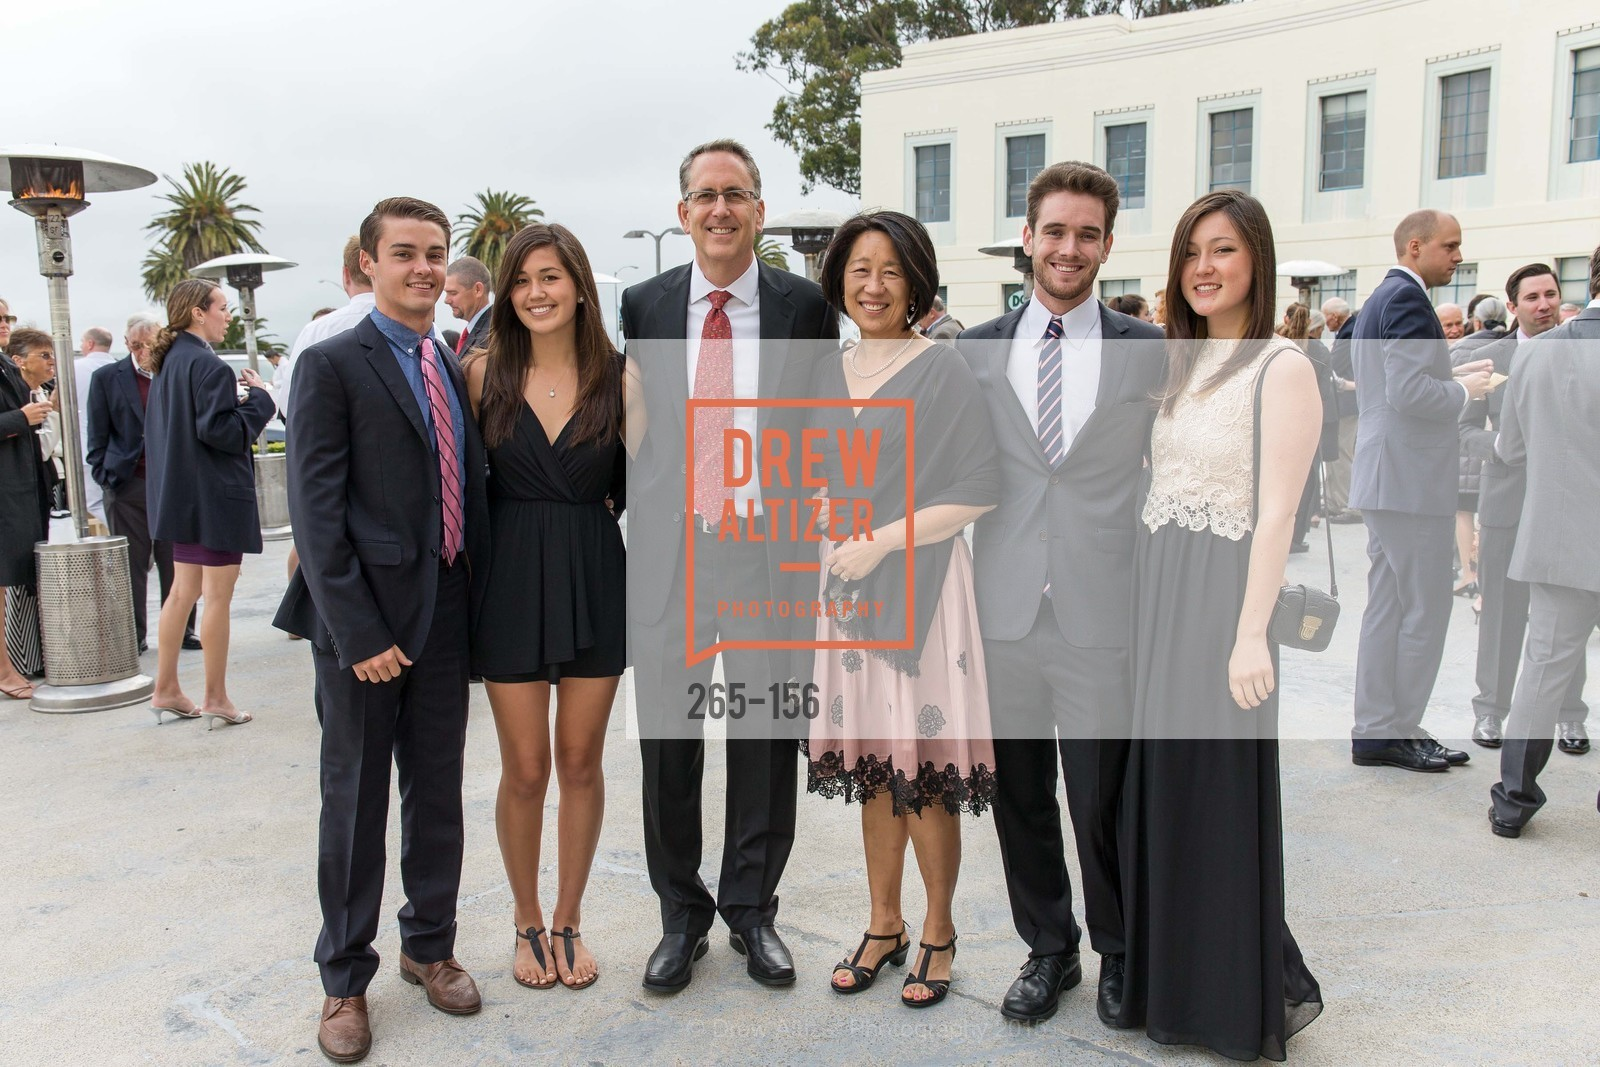 Oliver Rowles, Olivia Johnson, Steve Johnson, Josephine Chien, Taylor Barada, Stephanie Barada, California State Parks Foundation's GOLDEN POPPY AWARDS, Treasure Island Building One. 1 Avenue of the Palms, June 5th, 2015,Drew Altizer, Drew Altizer Photography, full-service agency, private events, San Francisco photographer, photographer california